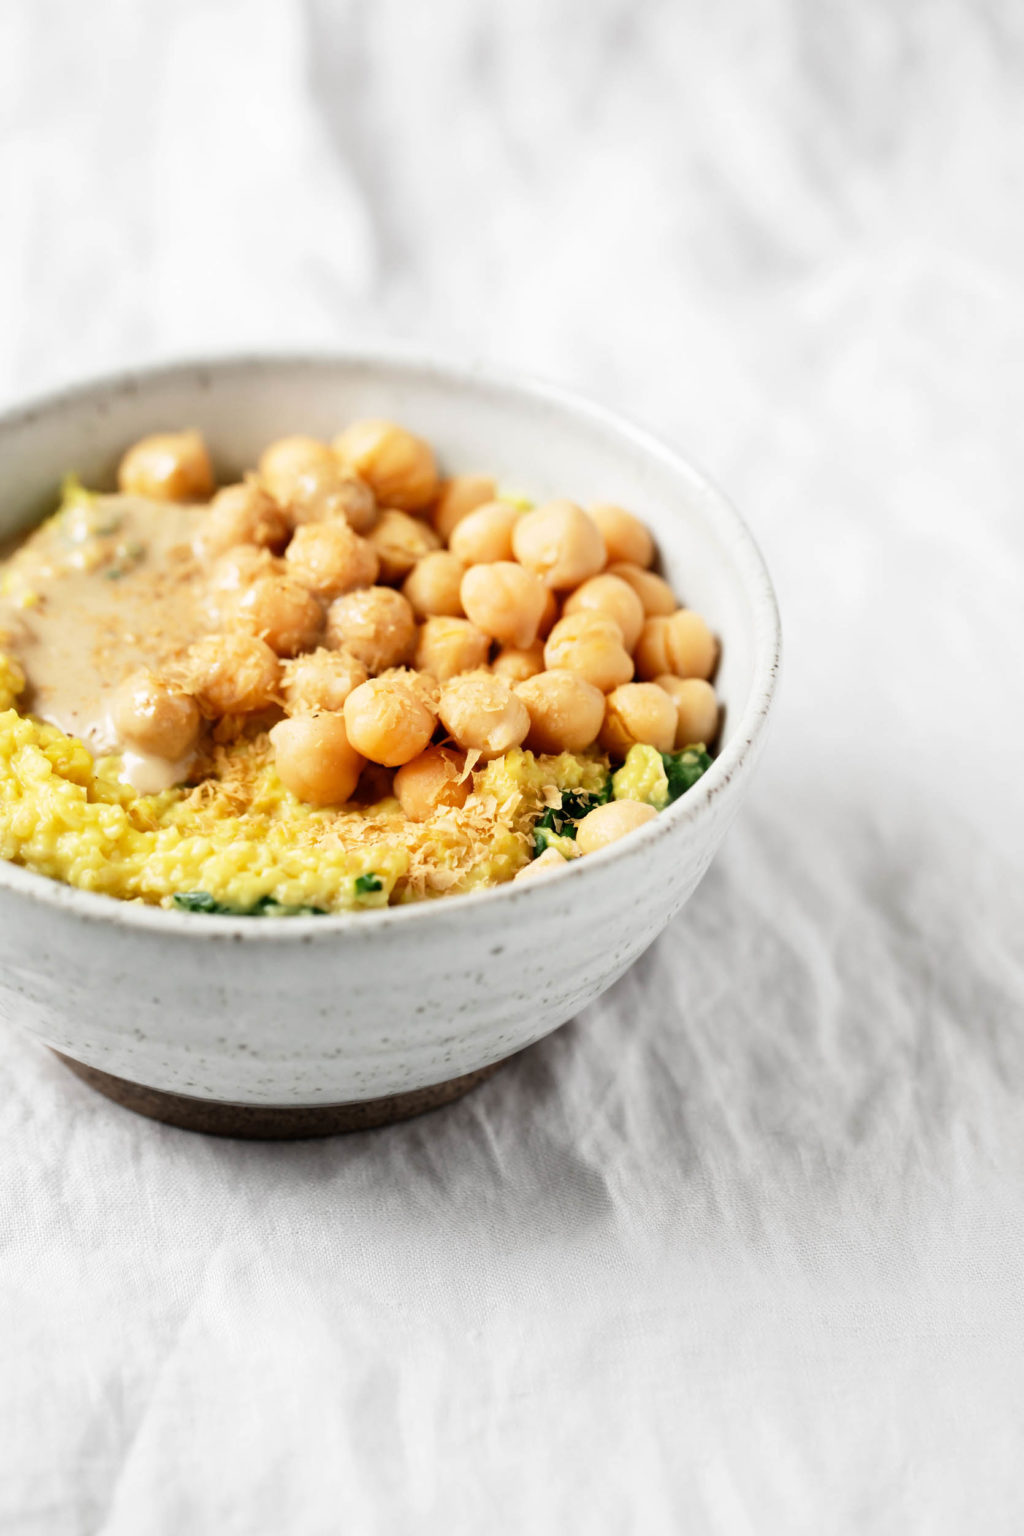 An angled shot of a bowl of savory oatmeal, which has been topped with tahini and chickpeas.